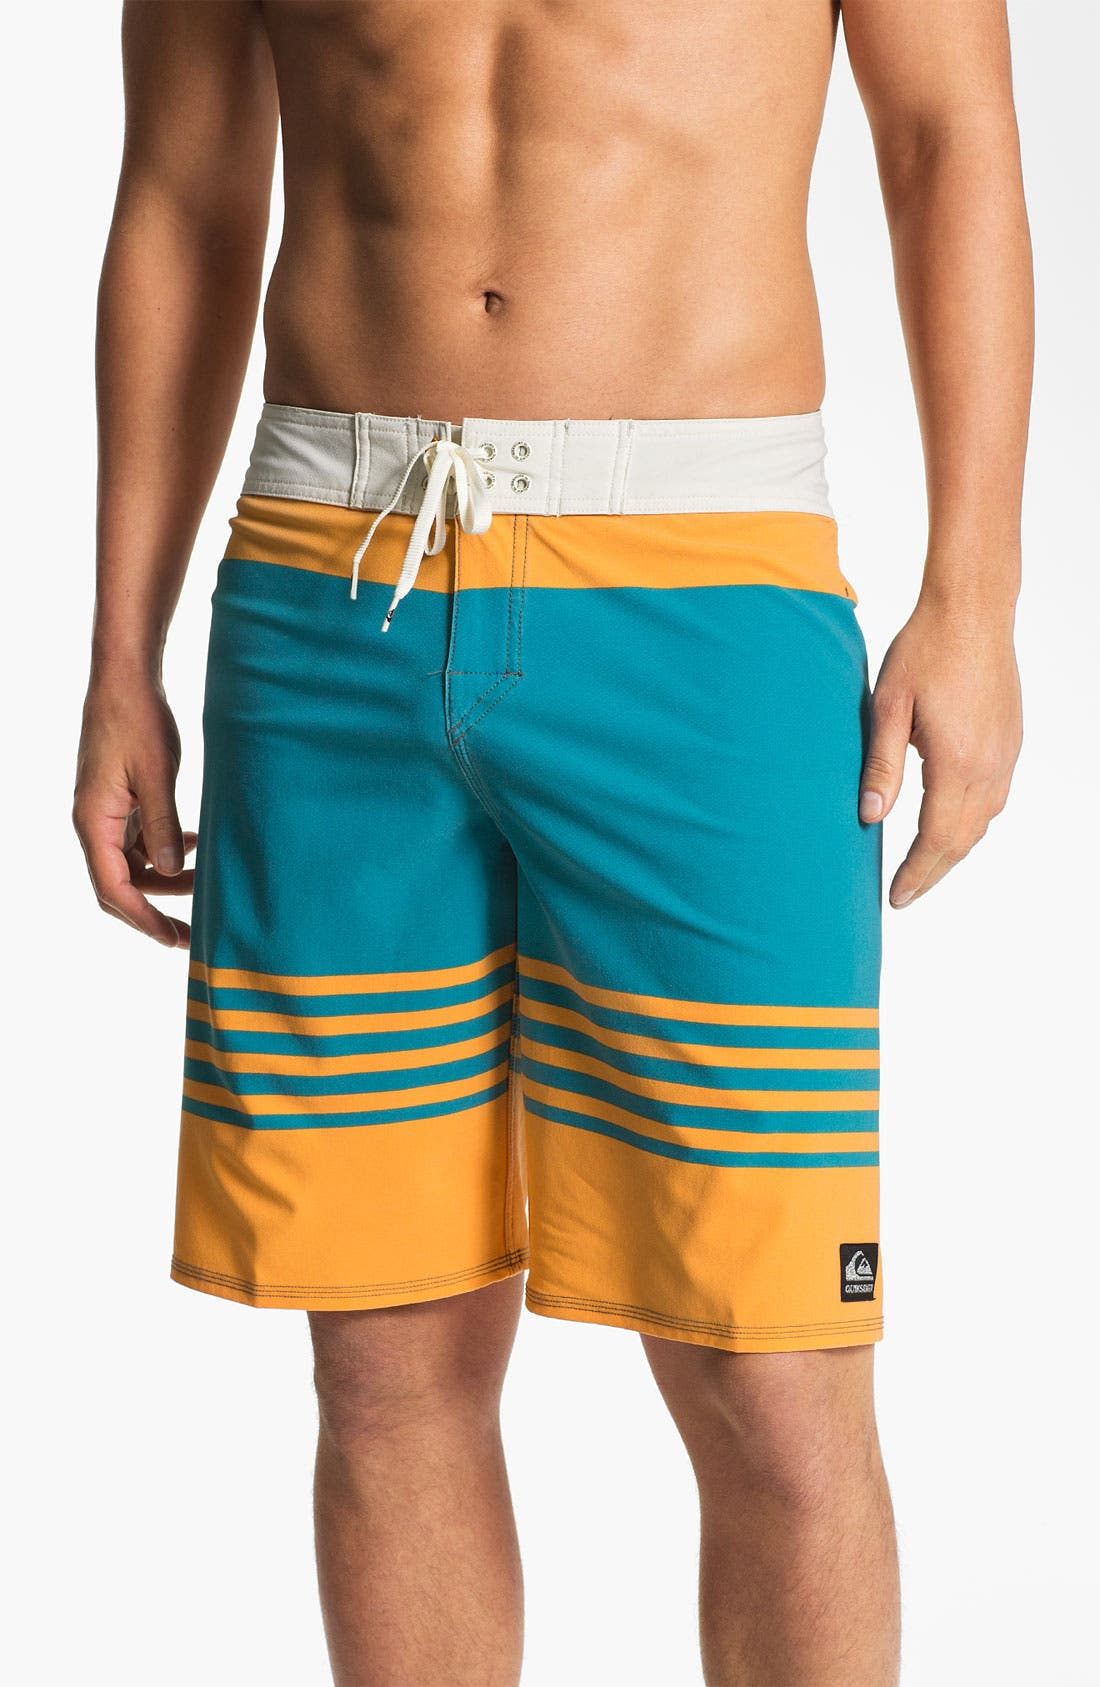 Main Image - Quiksilver 'Cypher Reynolds Revolt' Board Shorts